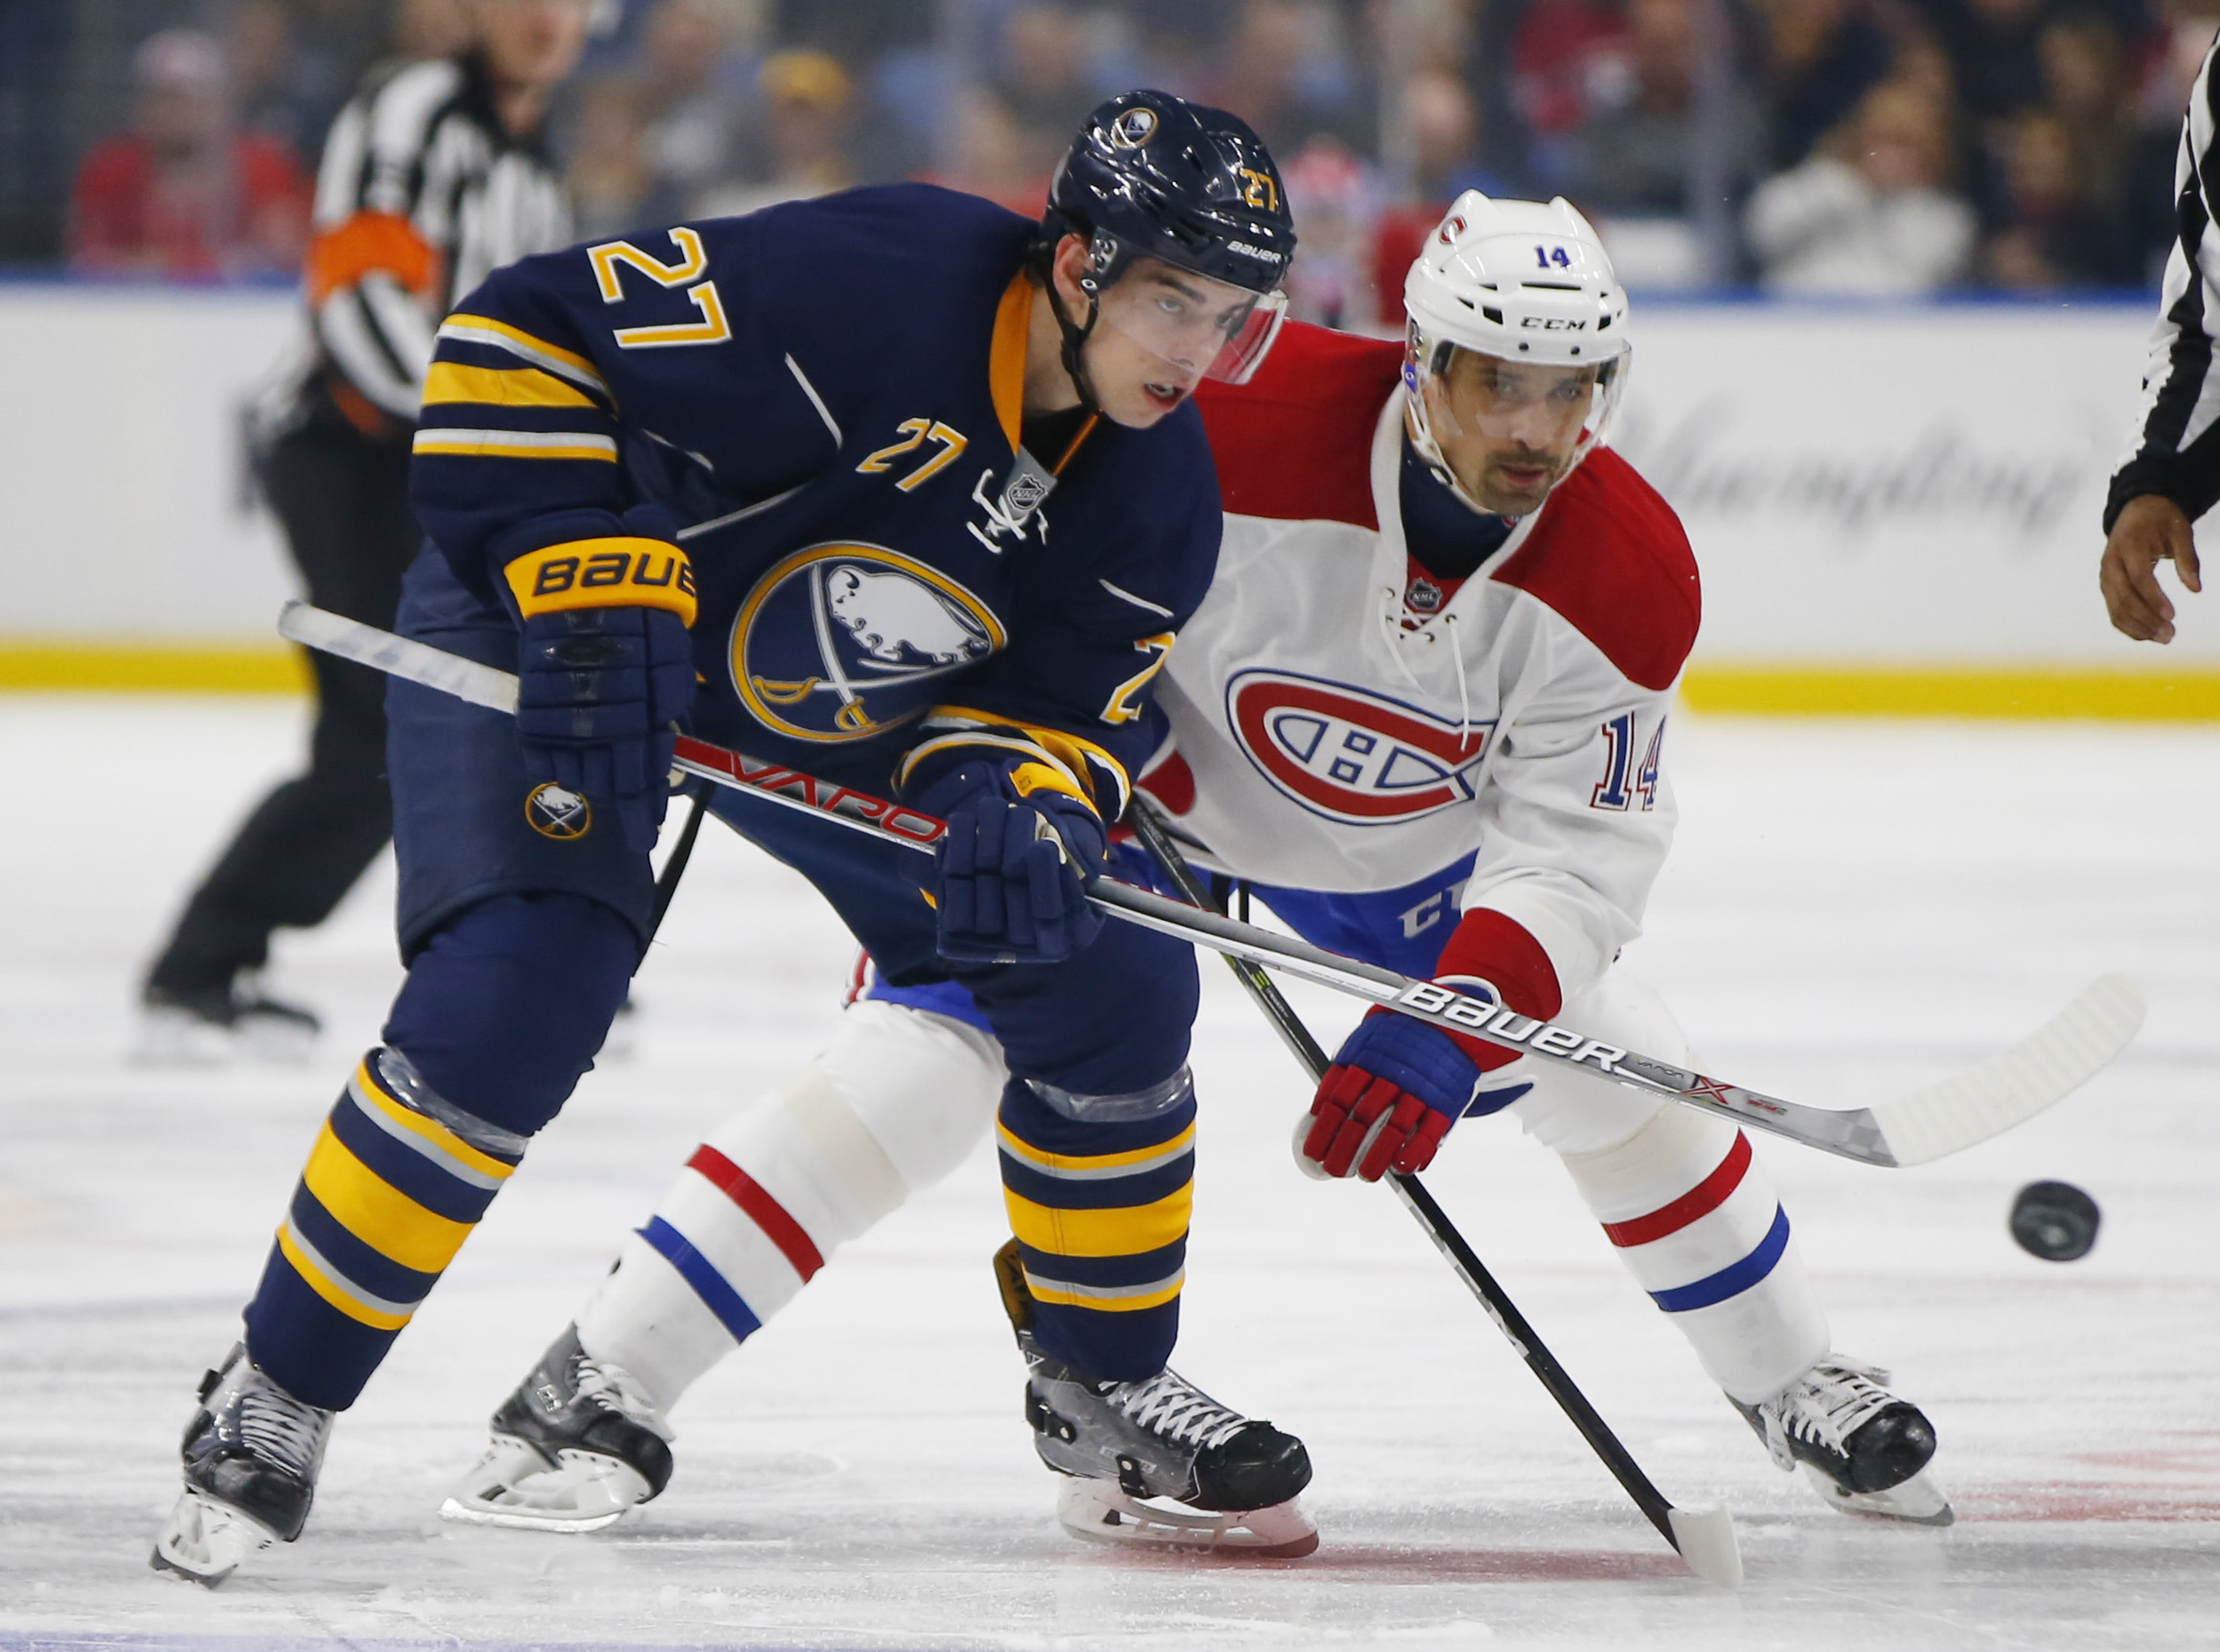 Derek Grant played 6:07 of shorthanded time for a Sabres penalty kill that was perfect against Winnipeg Sunday. (Harry Scull Jr./Buffalo News file photo)